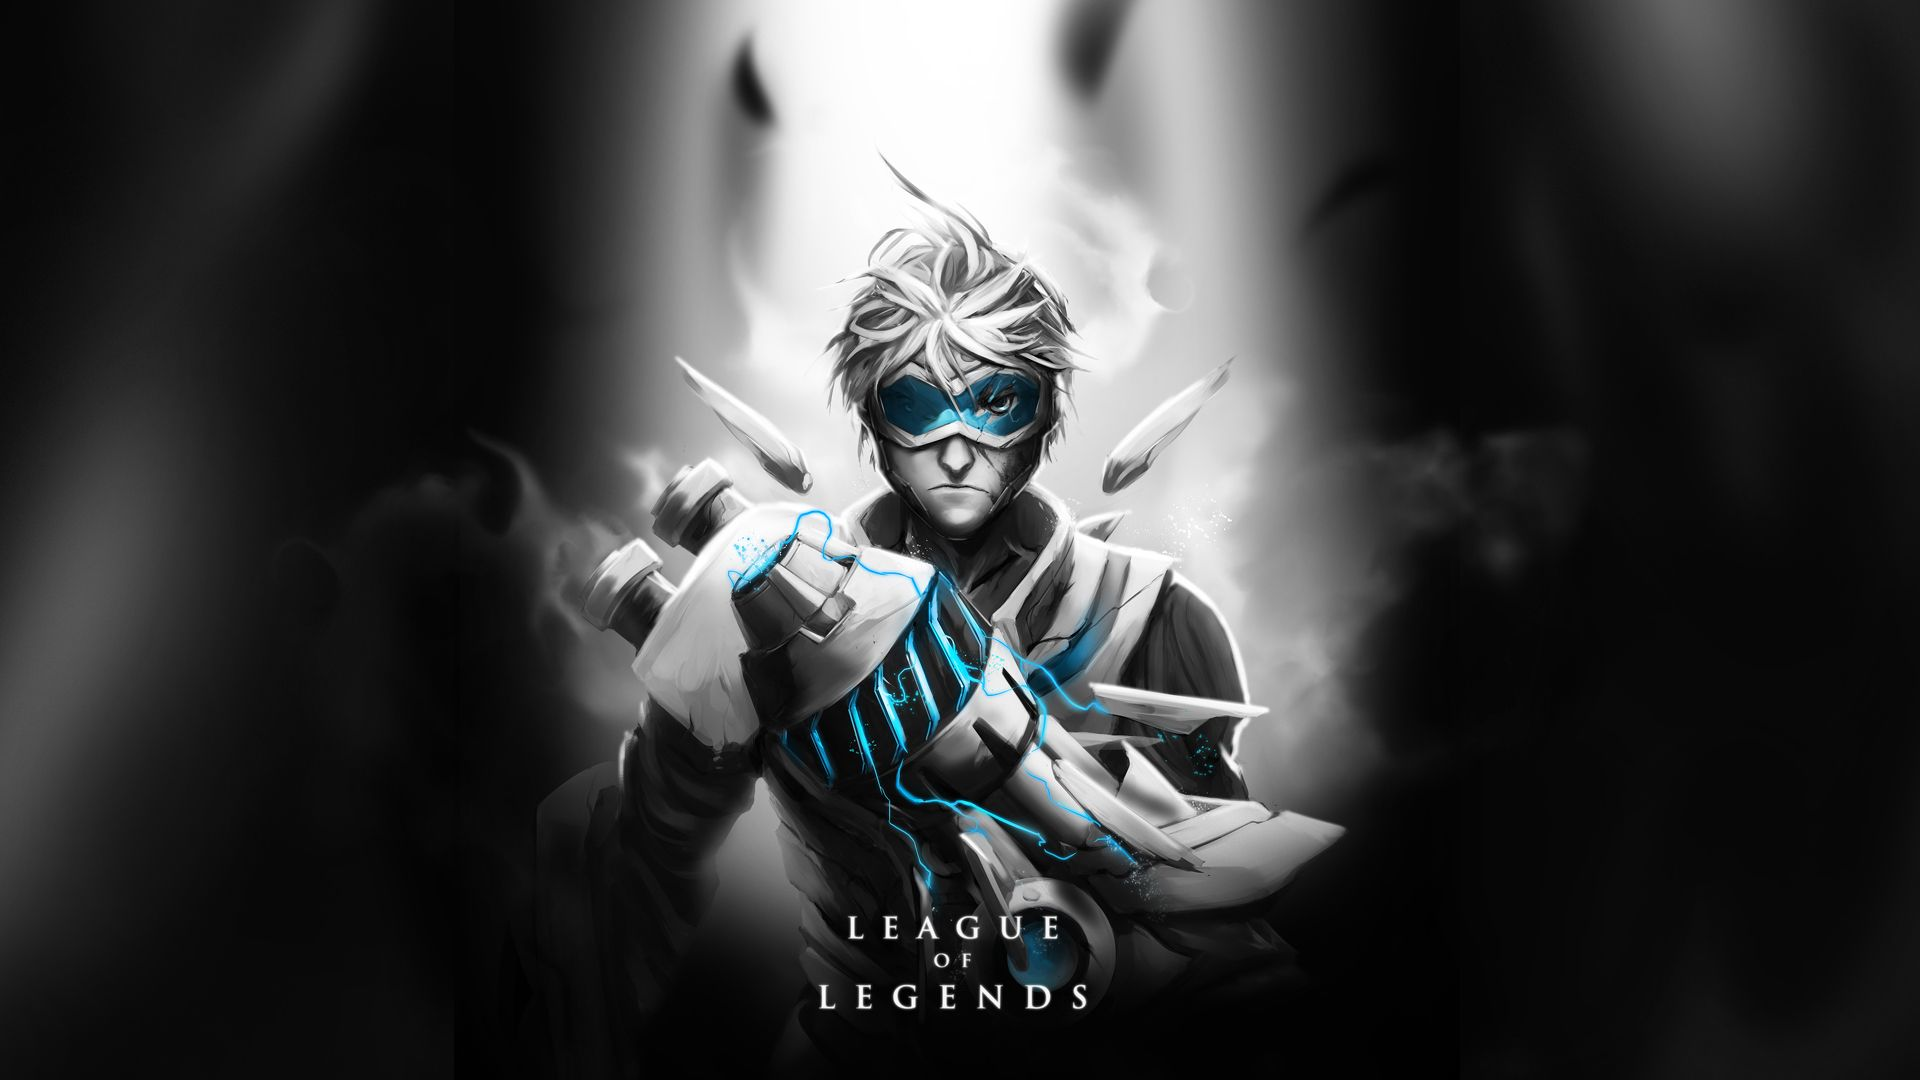 League Of Legends Ezreal Wallpapers High Resolution Is